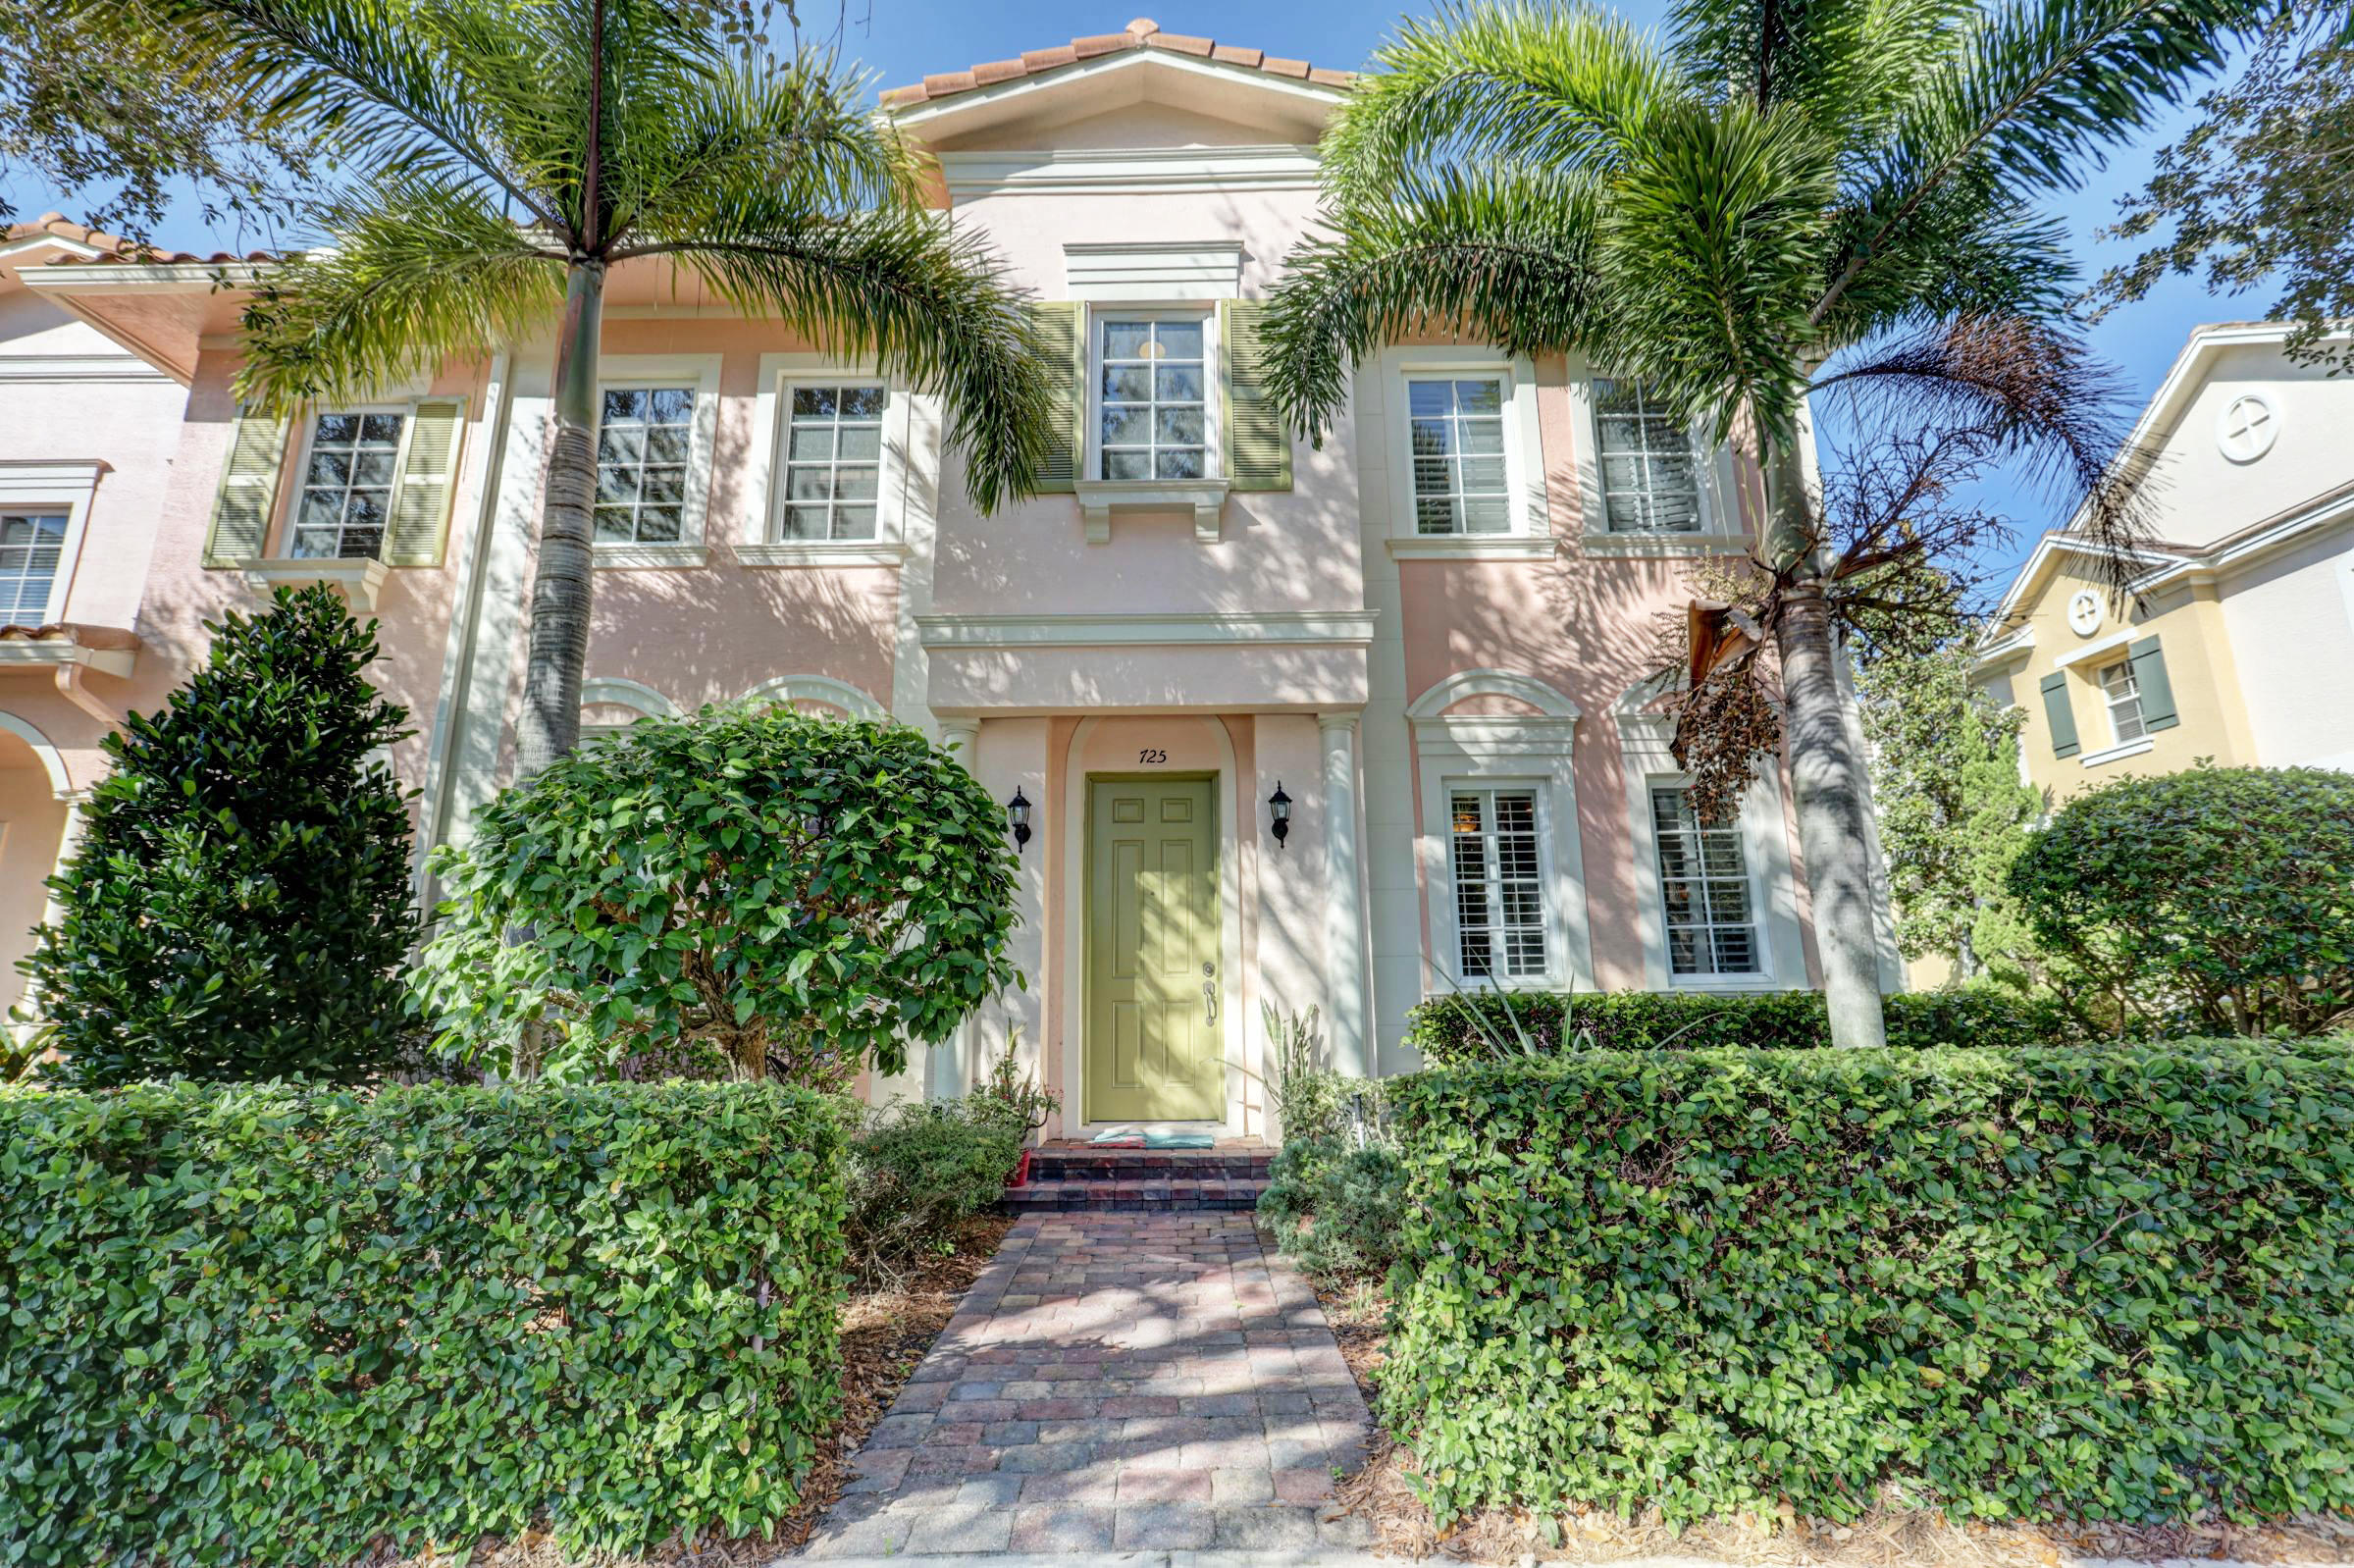 Photo of 725 Dakota Drive, Jupiter, FL 33458